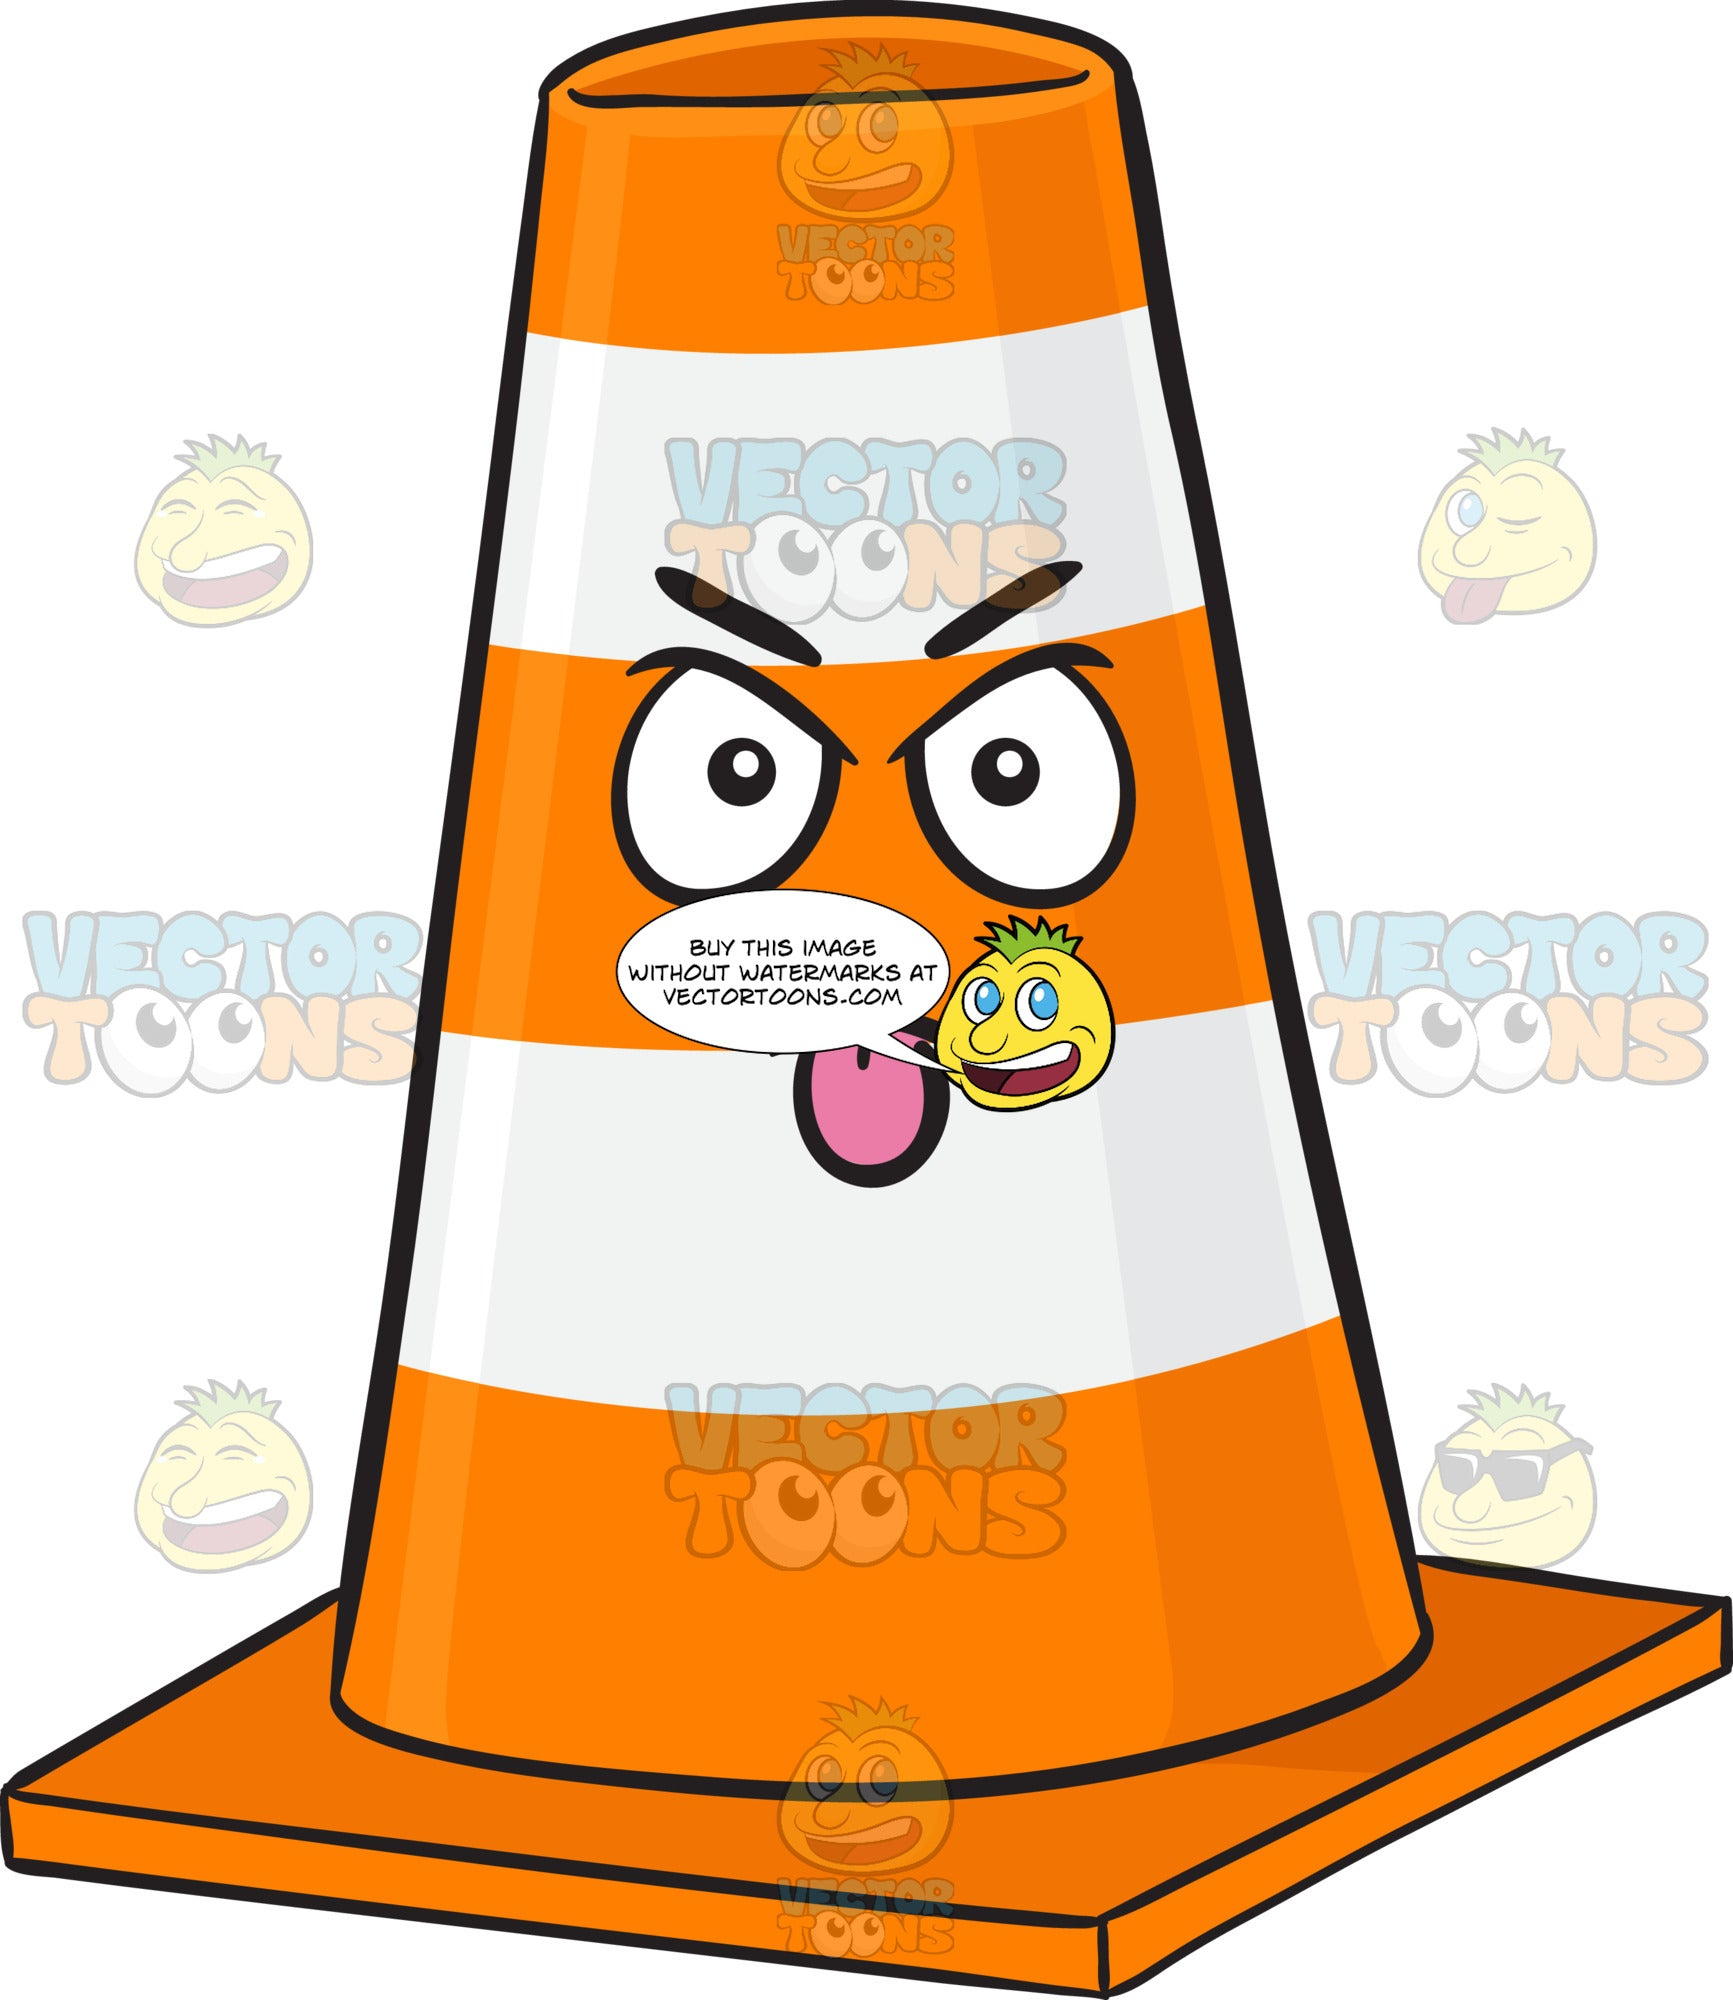 Traffic Cone Character Sticking Out Its Tongue Emoji